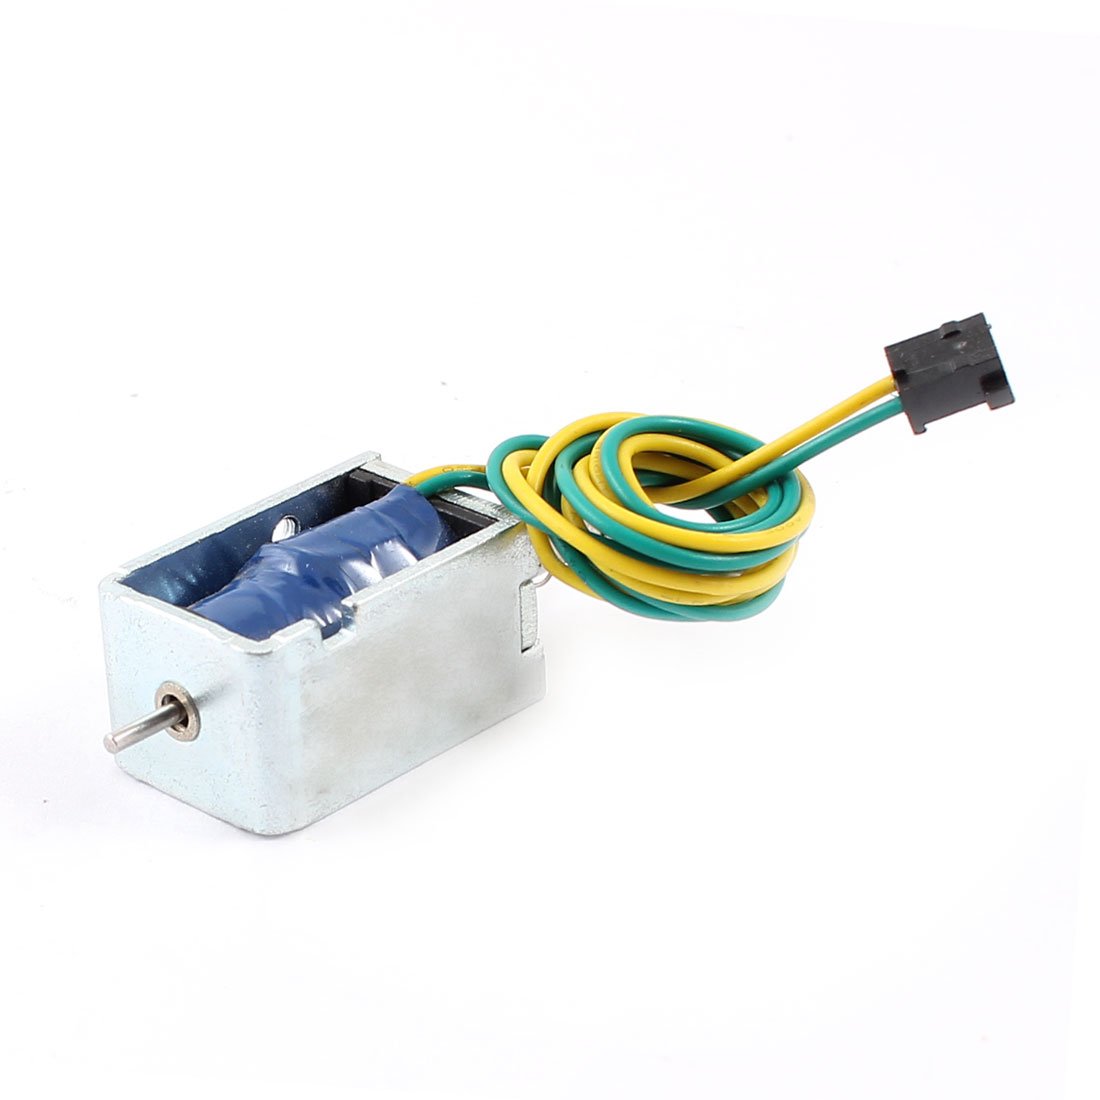 UXCELL 5Mm/85G 7.99W Power Wired Open Frame Push Pull Type Solenoid Electromagnet 12V 0.66A цена